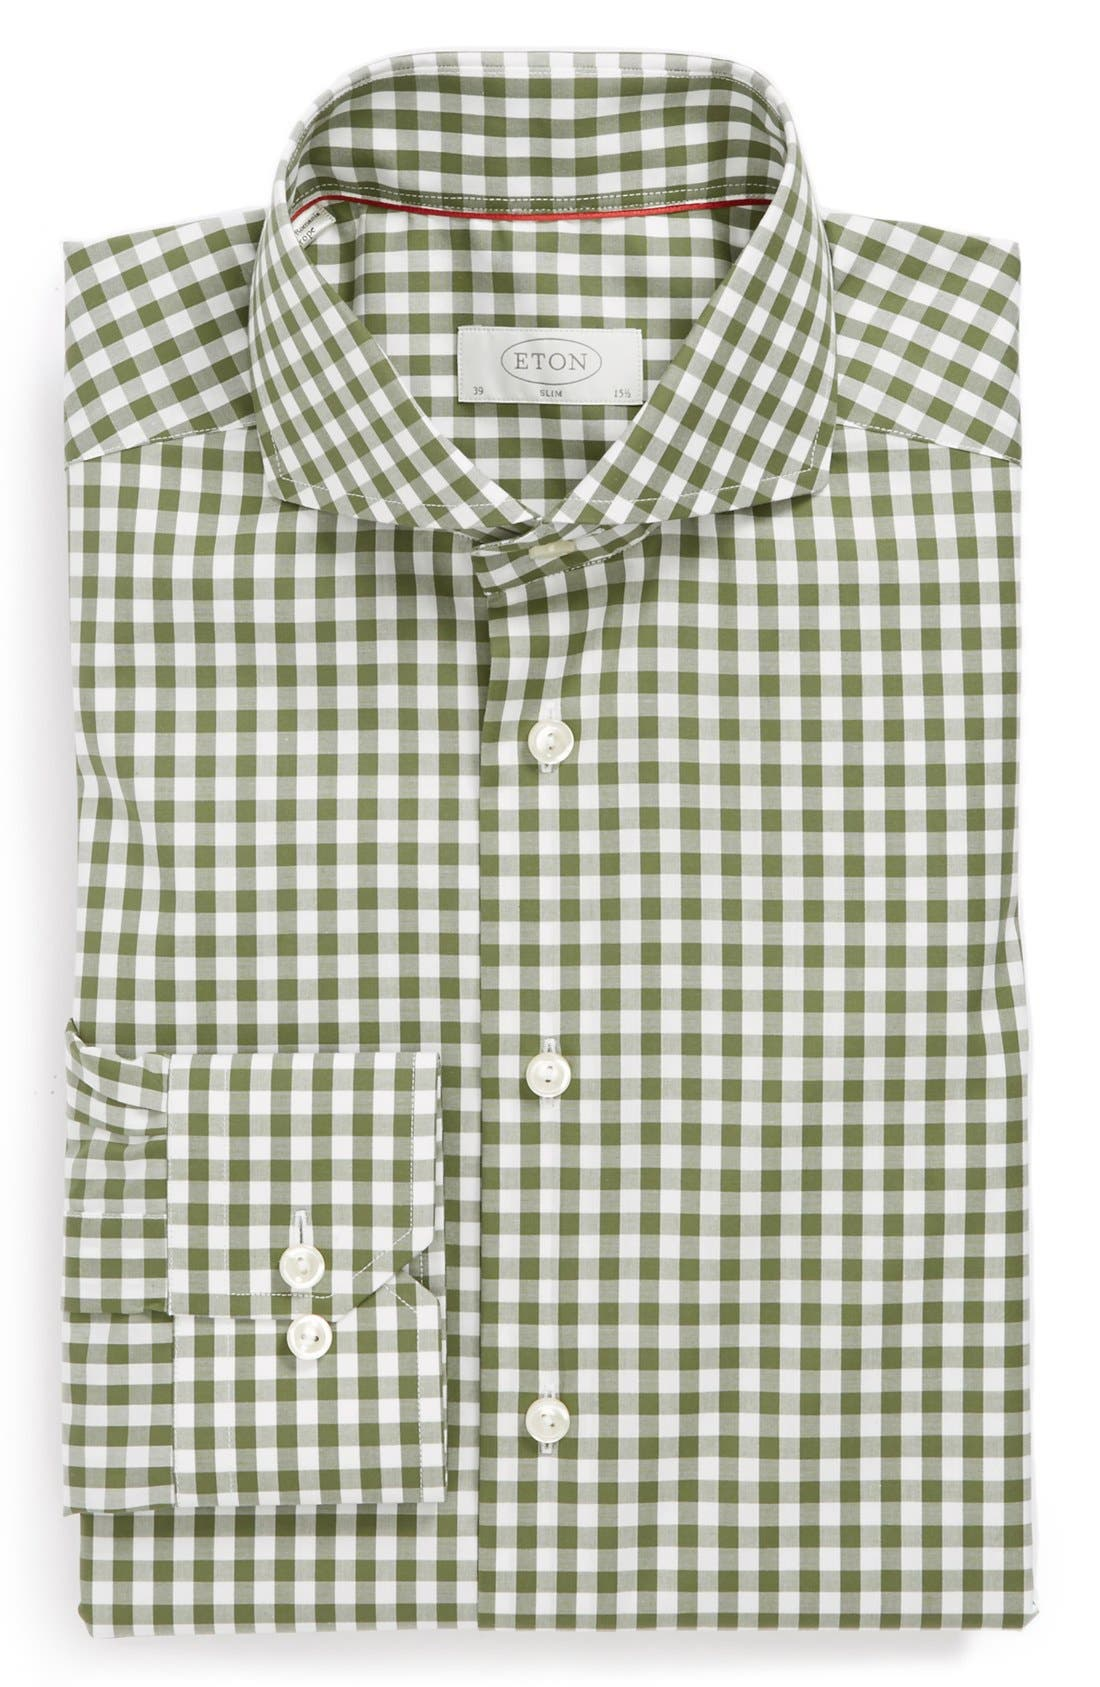 Main Image - Eton Slim Fit Dress Shirt